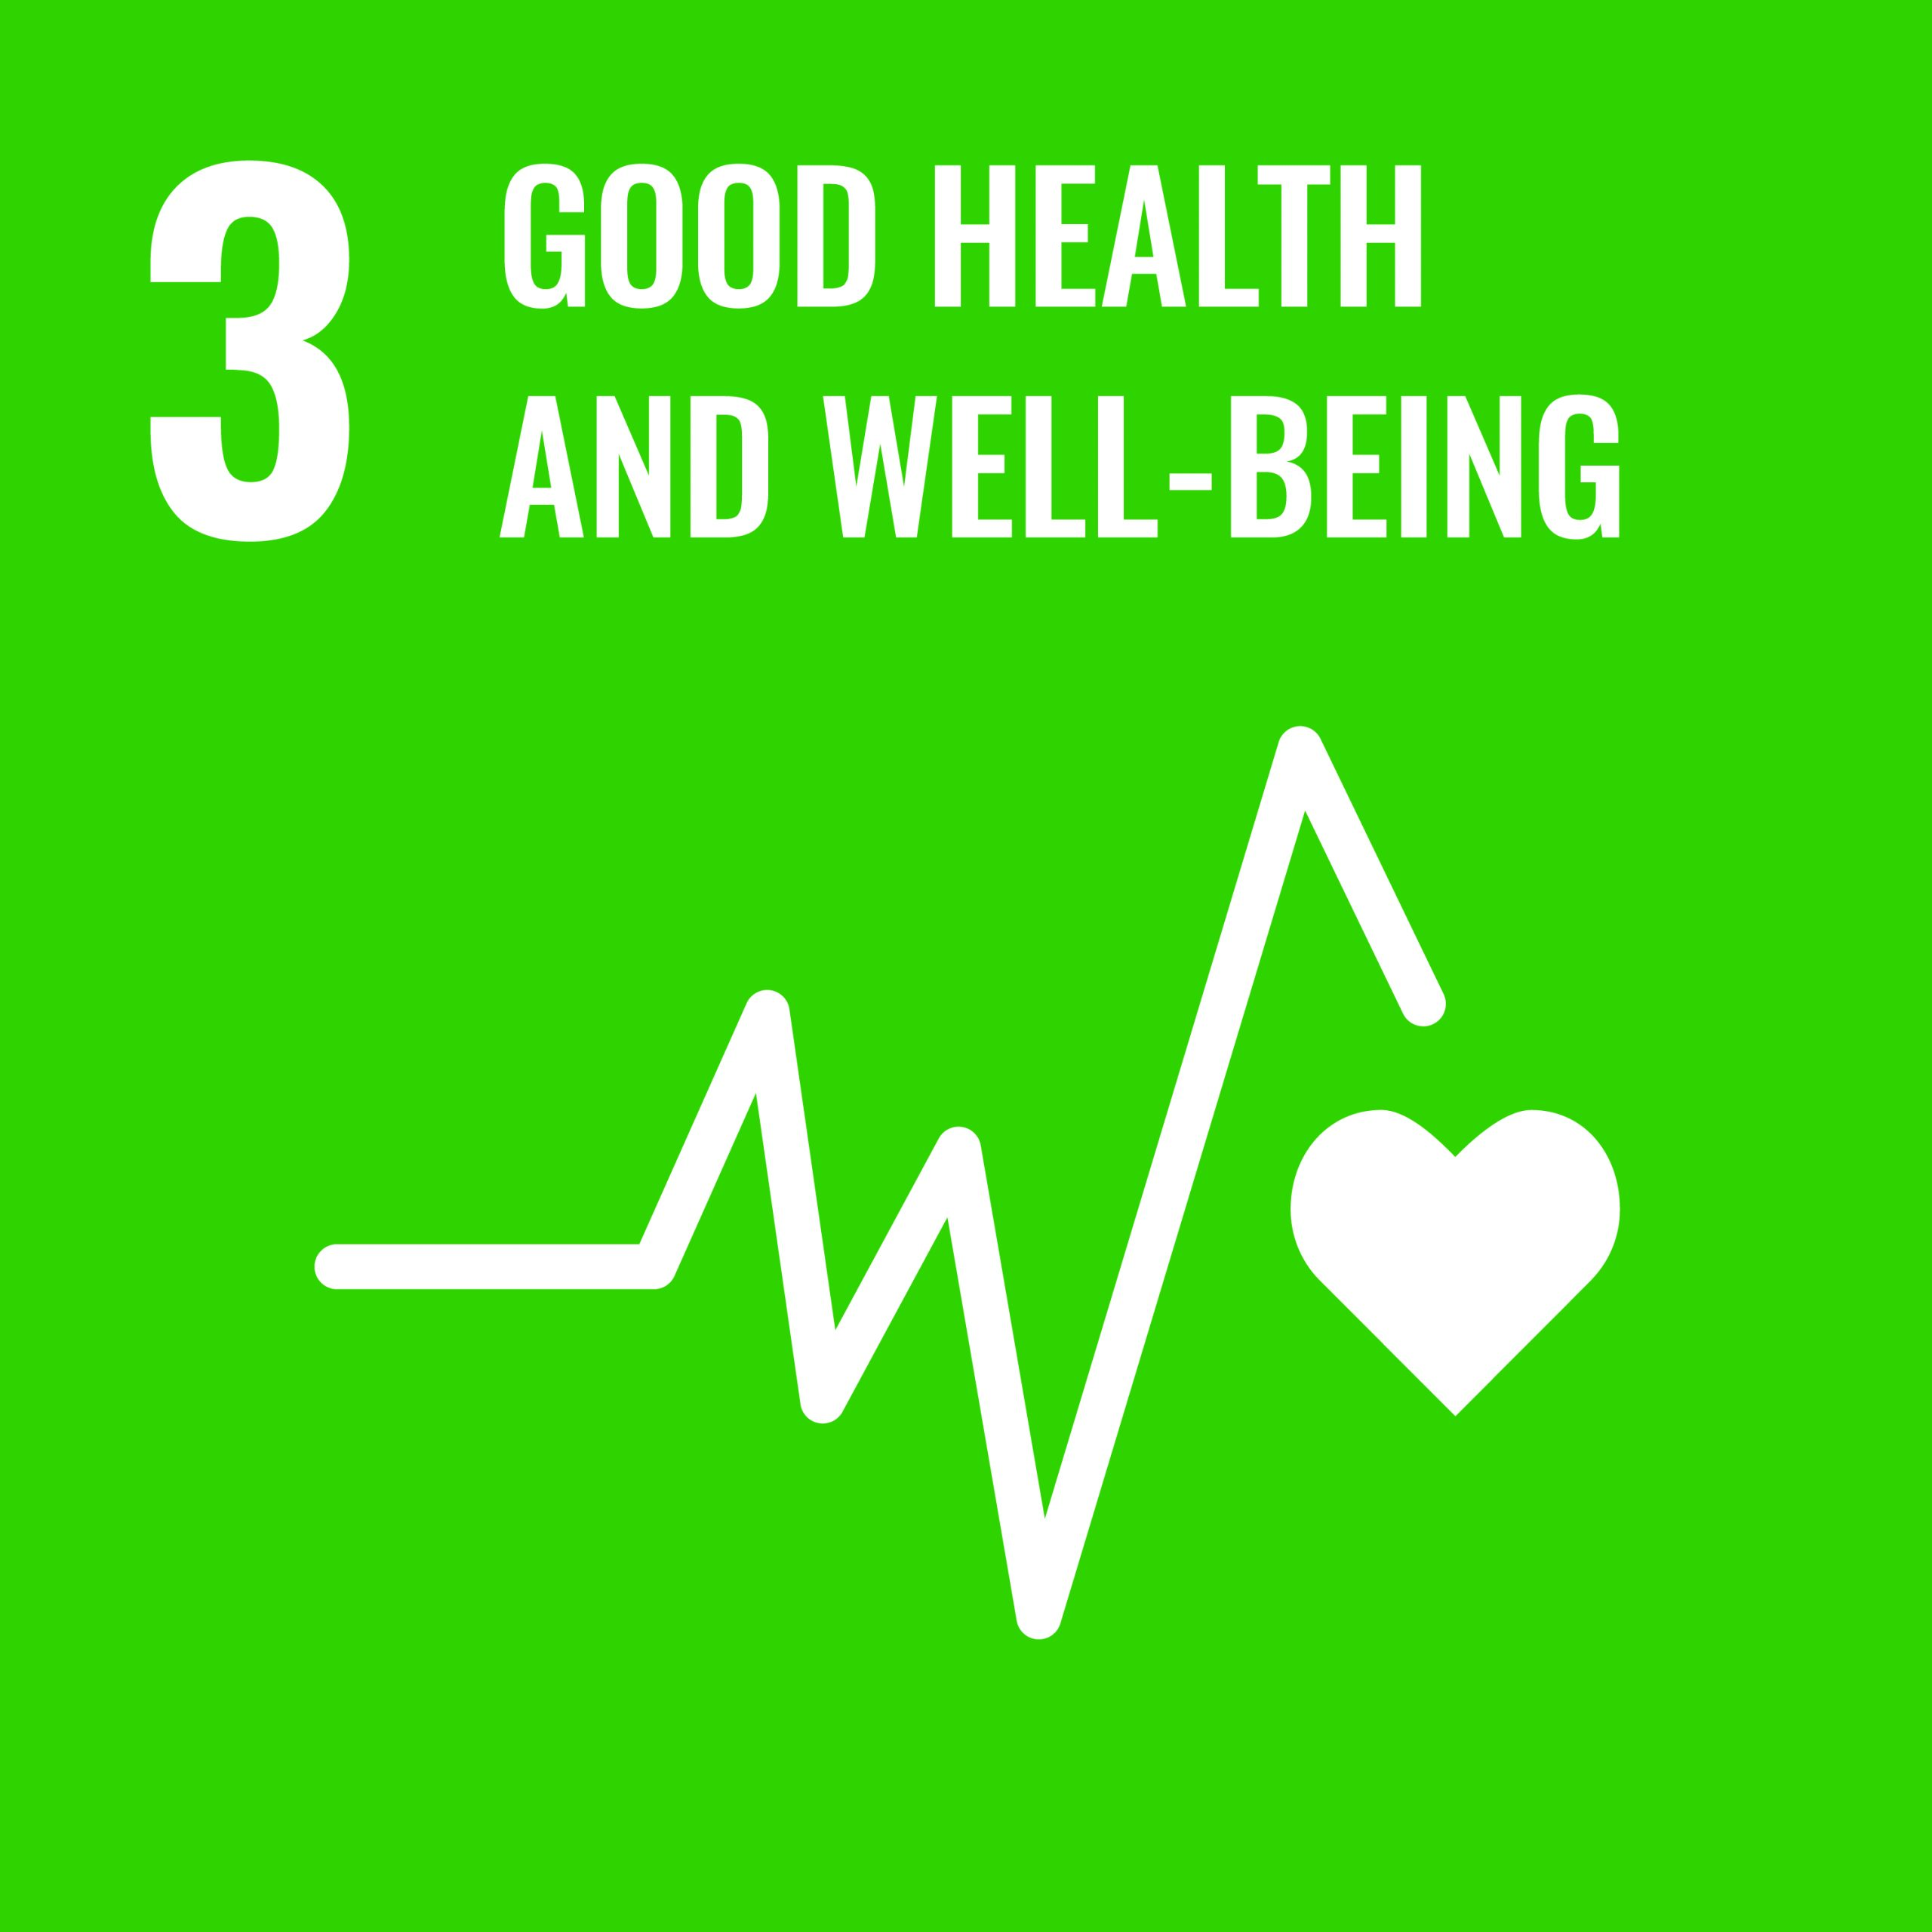 Good health and wellbeing - SDG 3